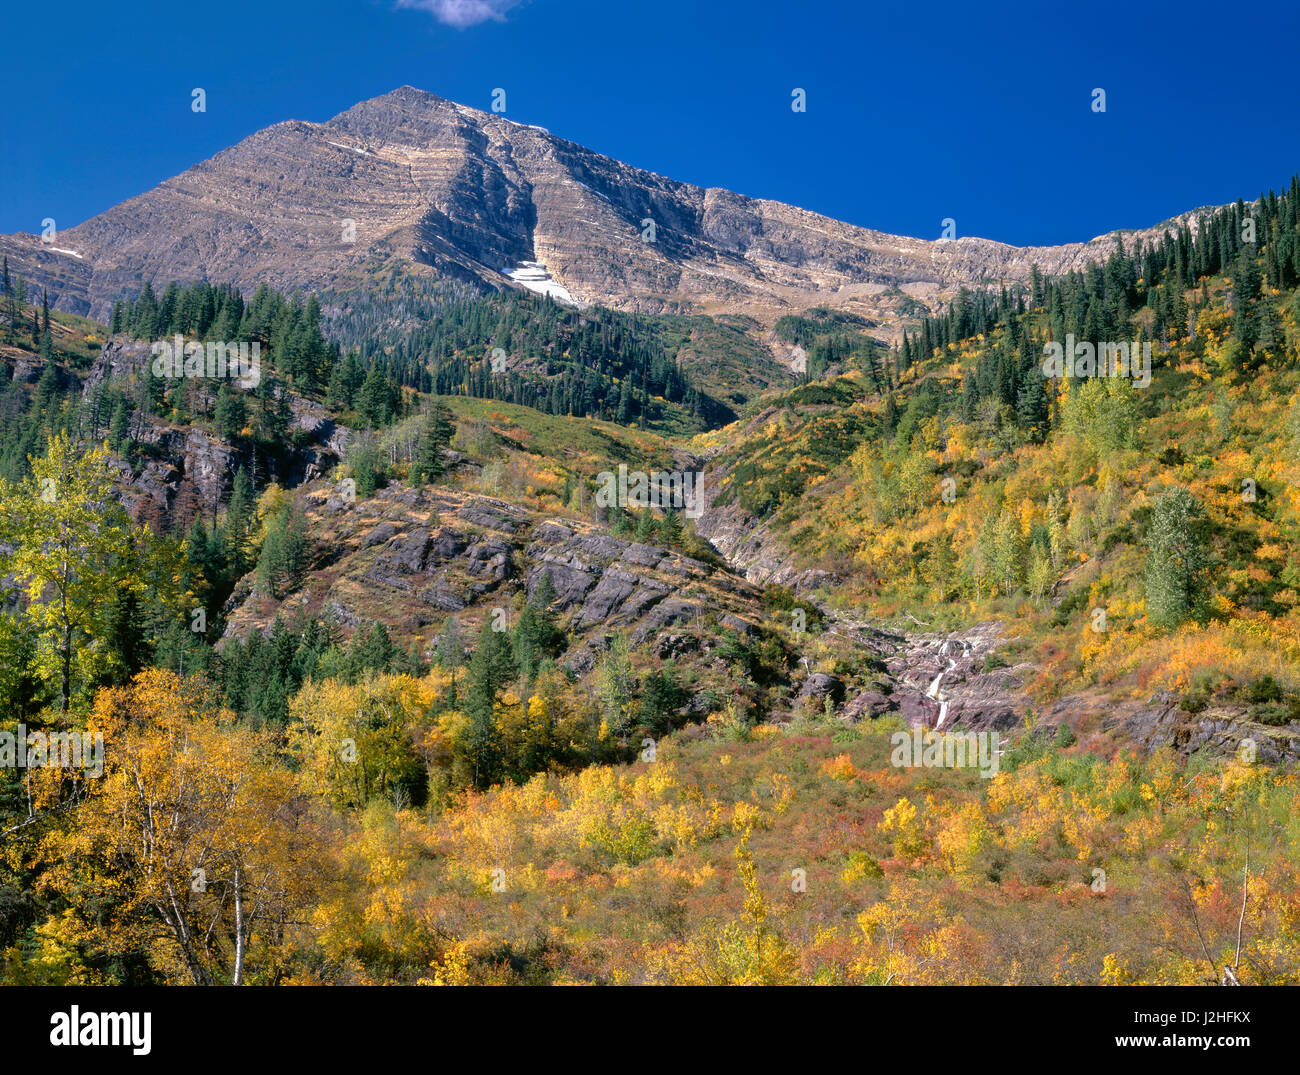 USA, Montana, Glacier National Park, Heavens Peak rises above fall-colored slopes and small waterfall, view from - Stock Image